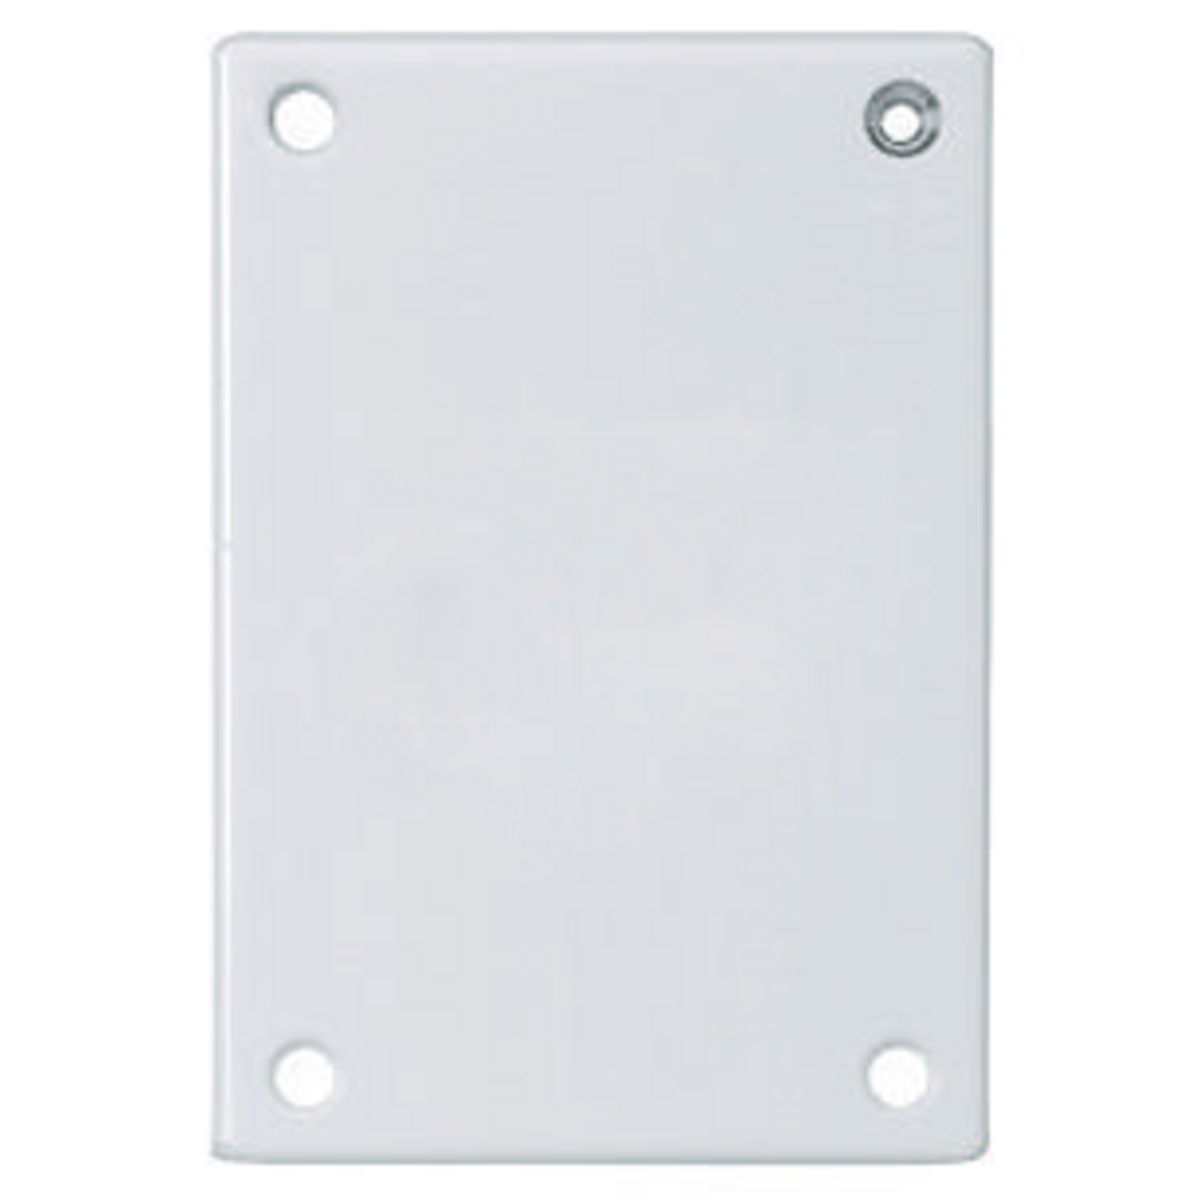 Wall Plates And Covers United Electric 15 20 Amp Gfi Gfci Receptacle Brown Black Gray Almond Ivory White Hubswp13 Sec Wallplate 1 G Blank Wh Swp13 Hubbell